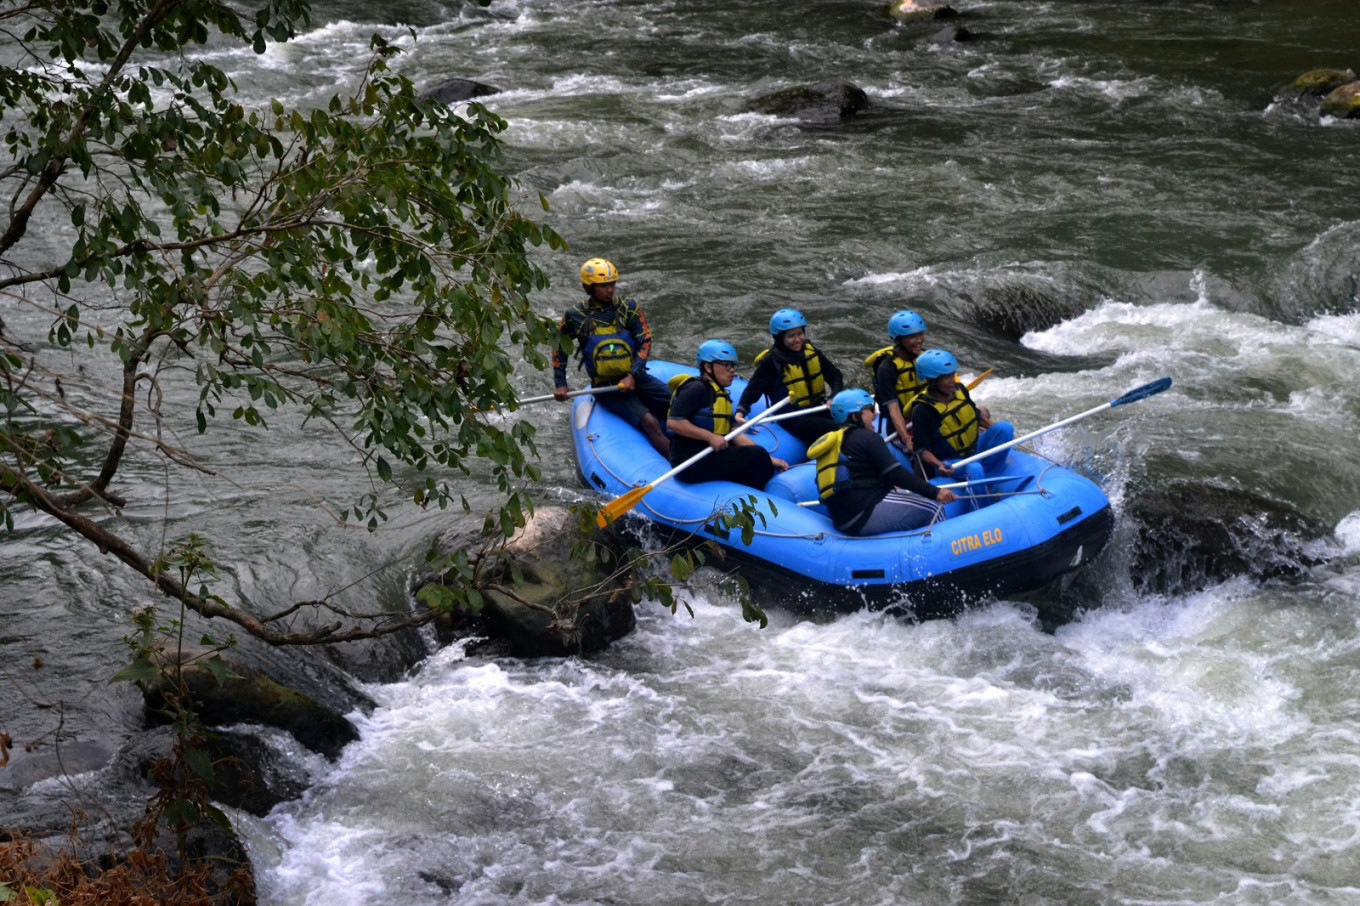 The Elo River is often used by visitors as a playground for rafting.